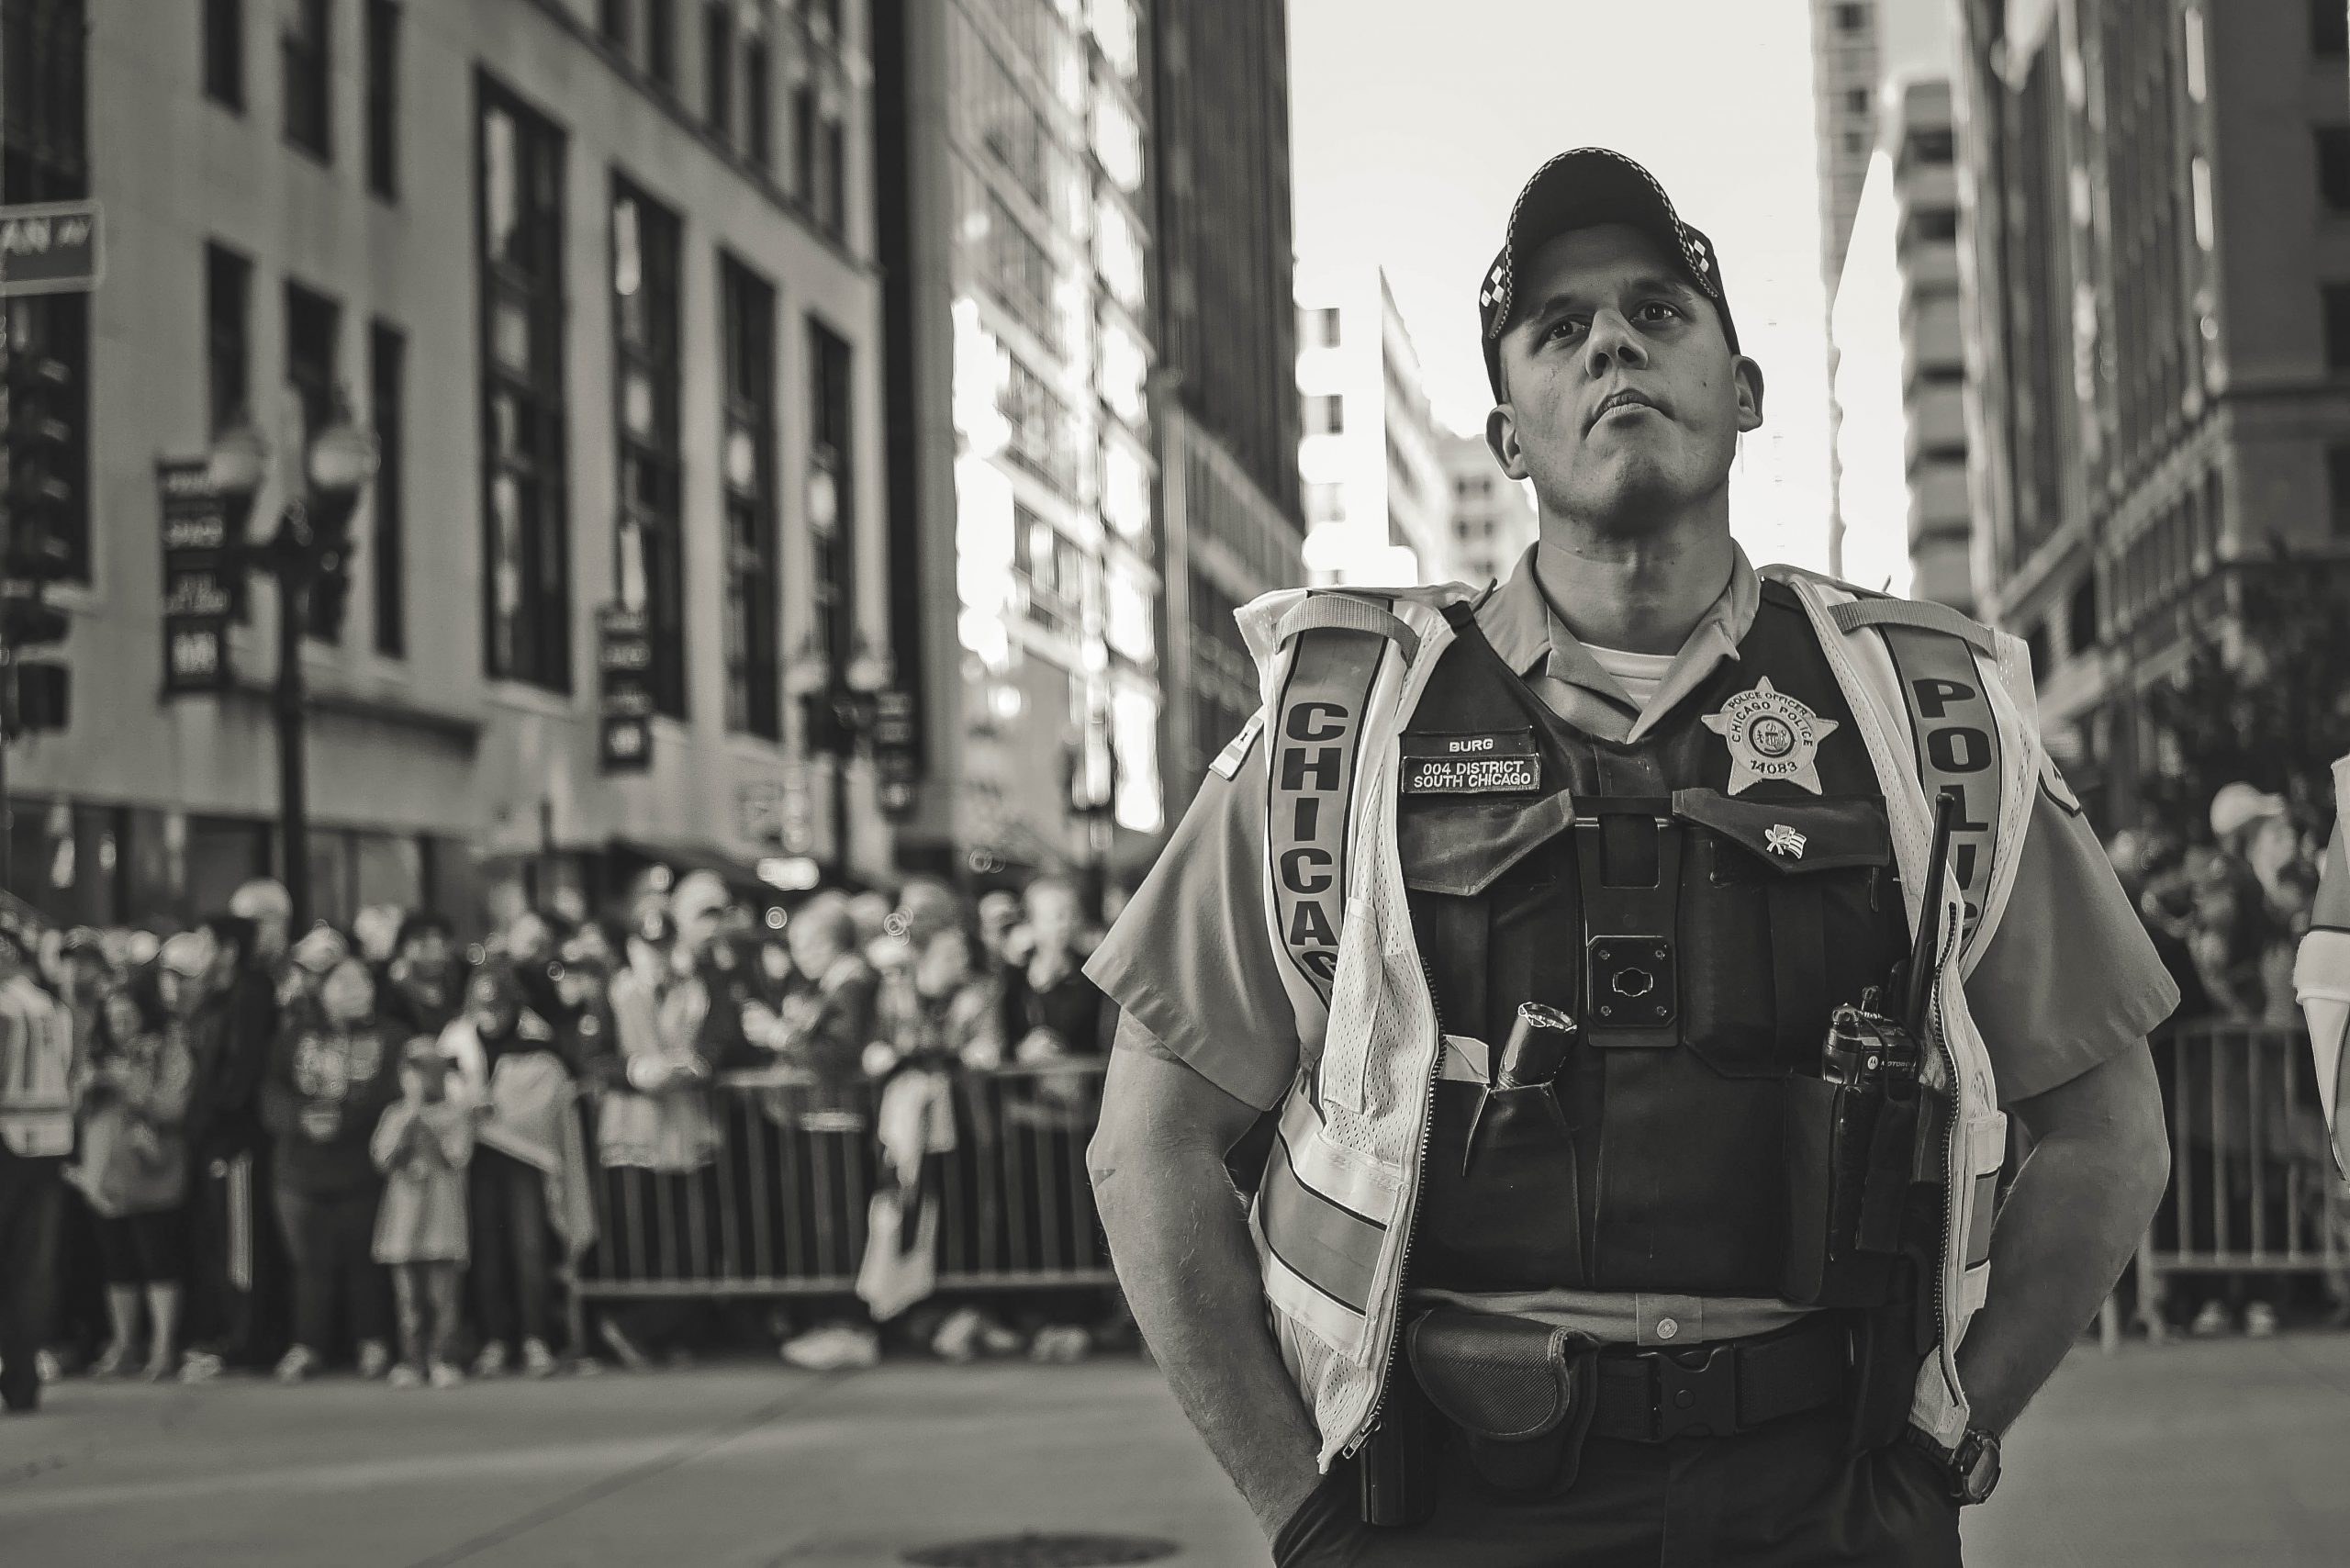 Grayscale Photo Of A Police 2442435